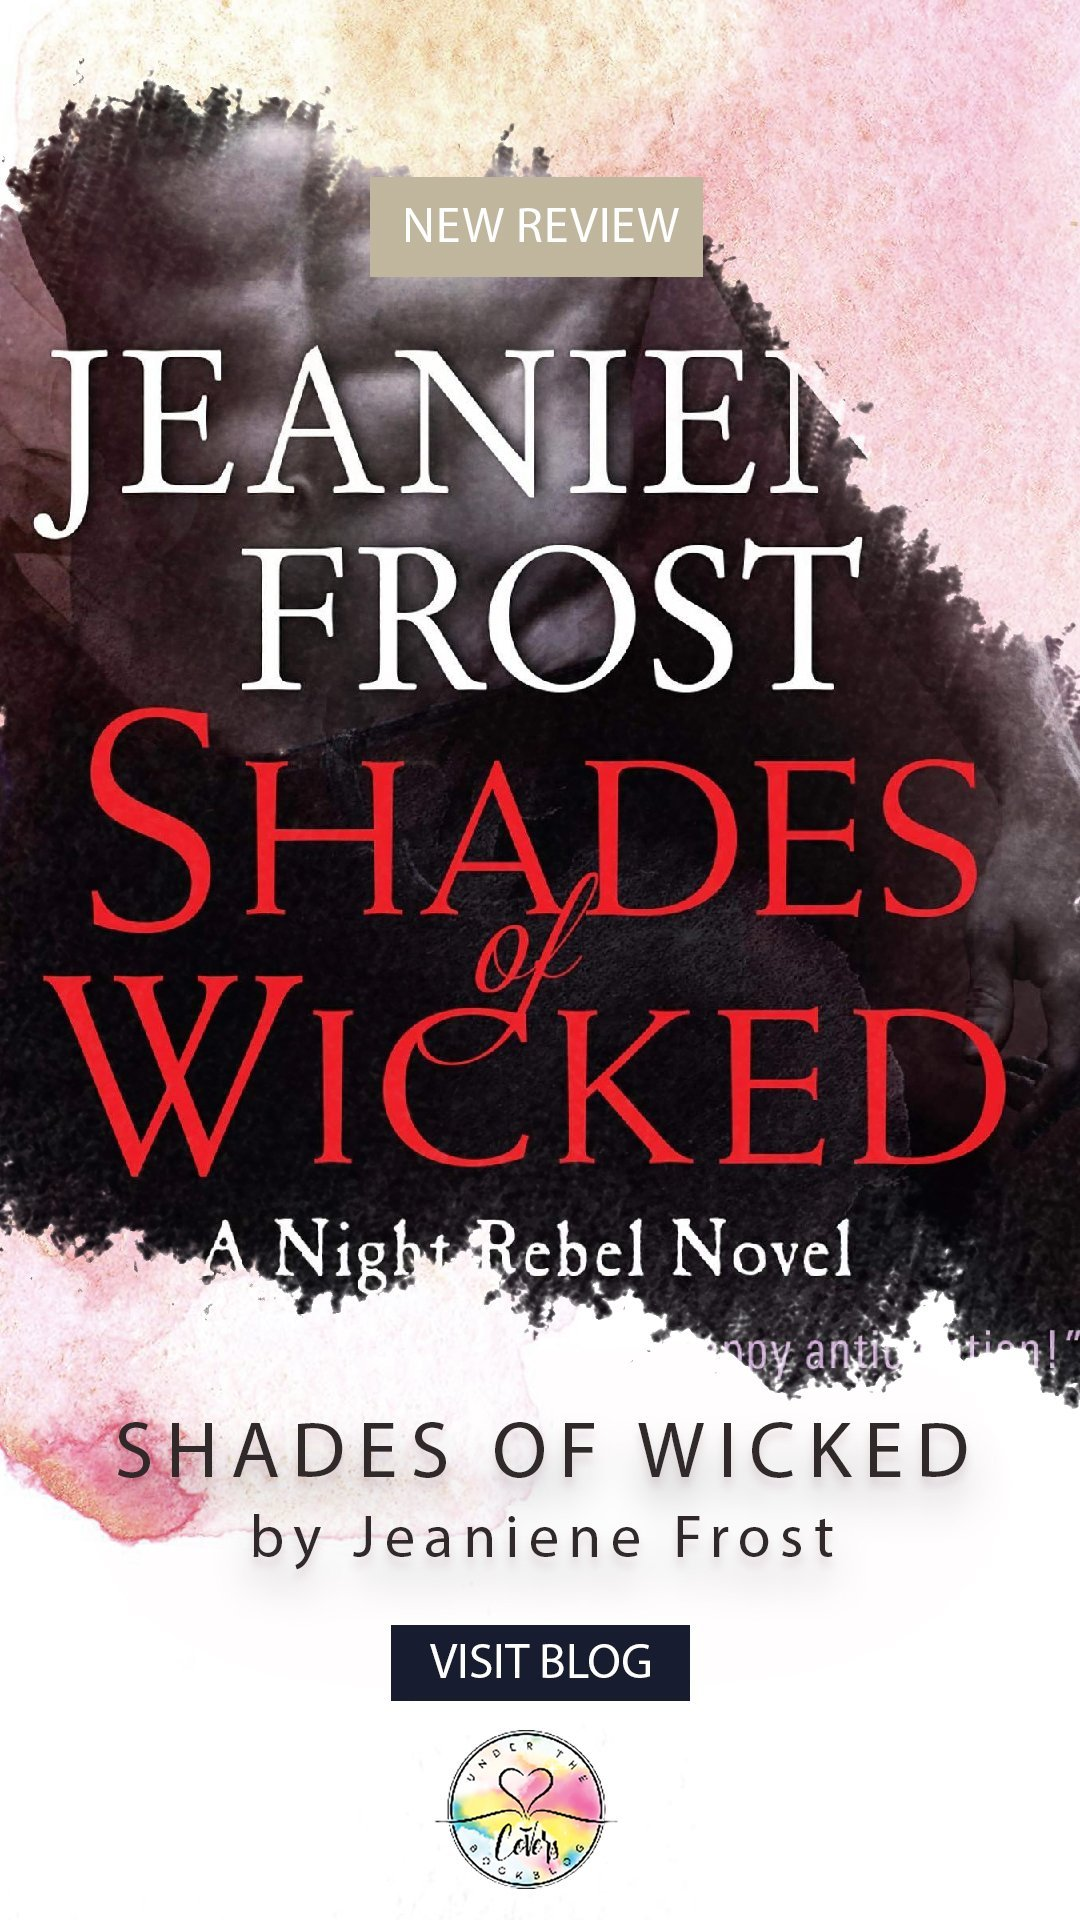 ARC Review: Shades of Wicked by Jeaniene Frost